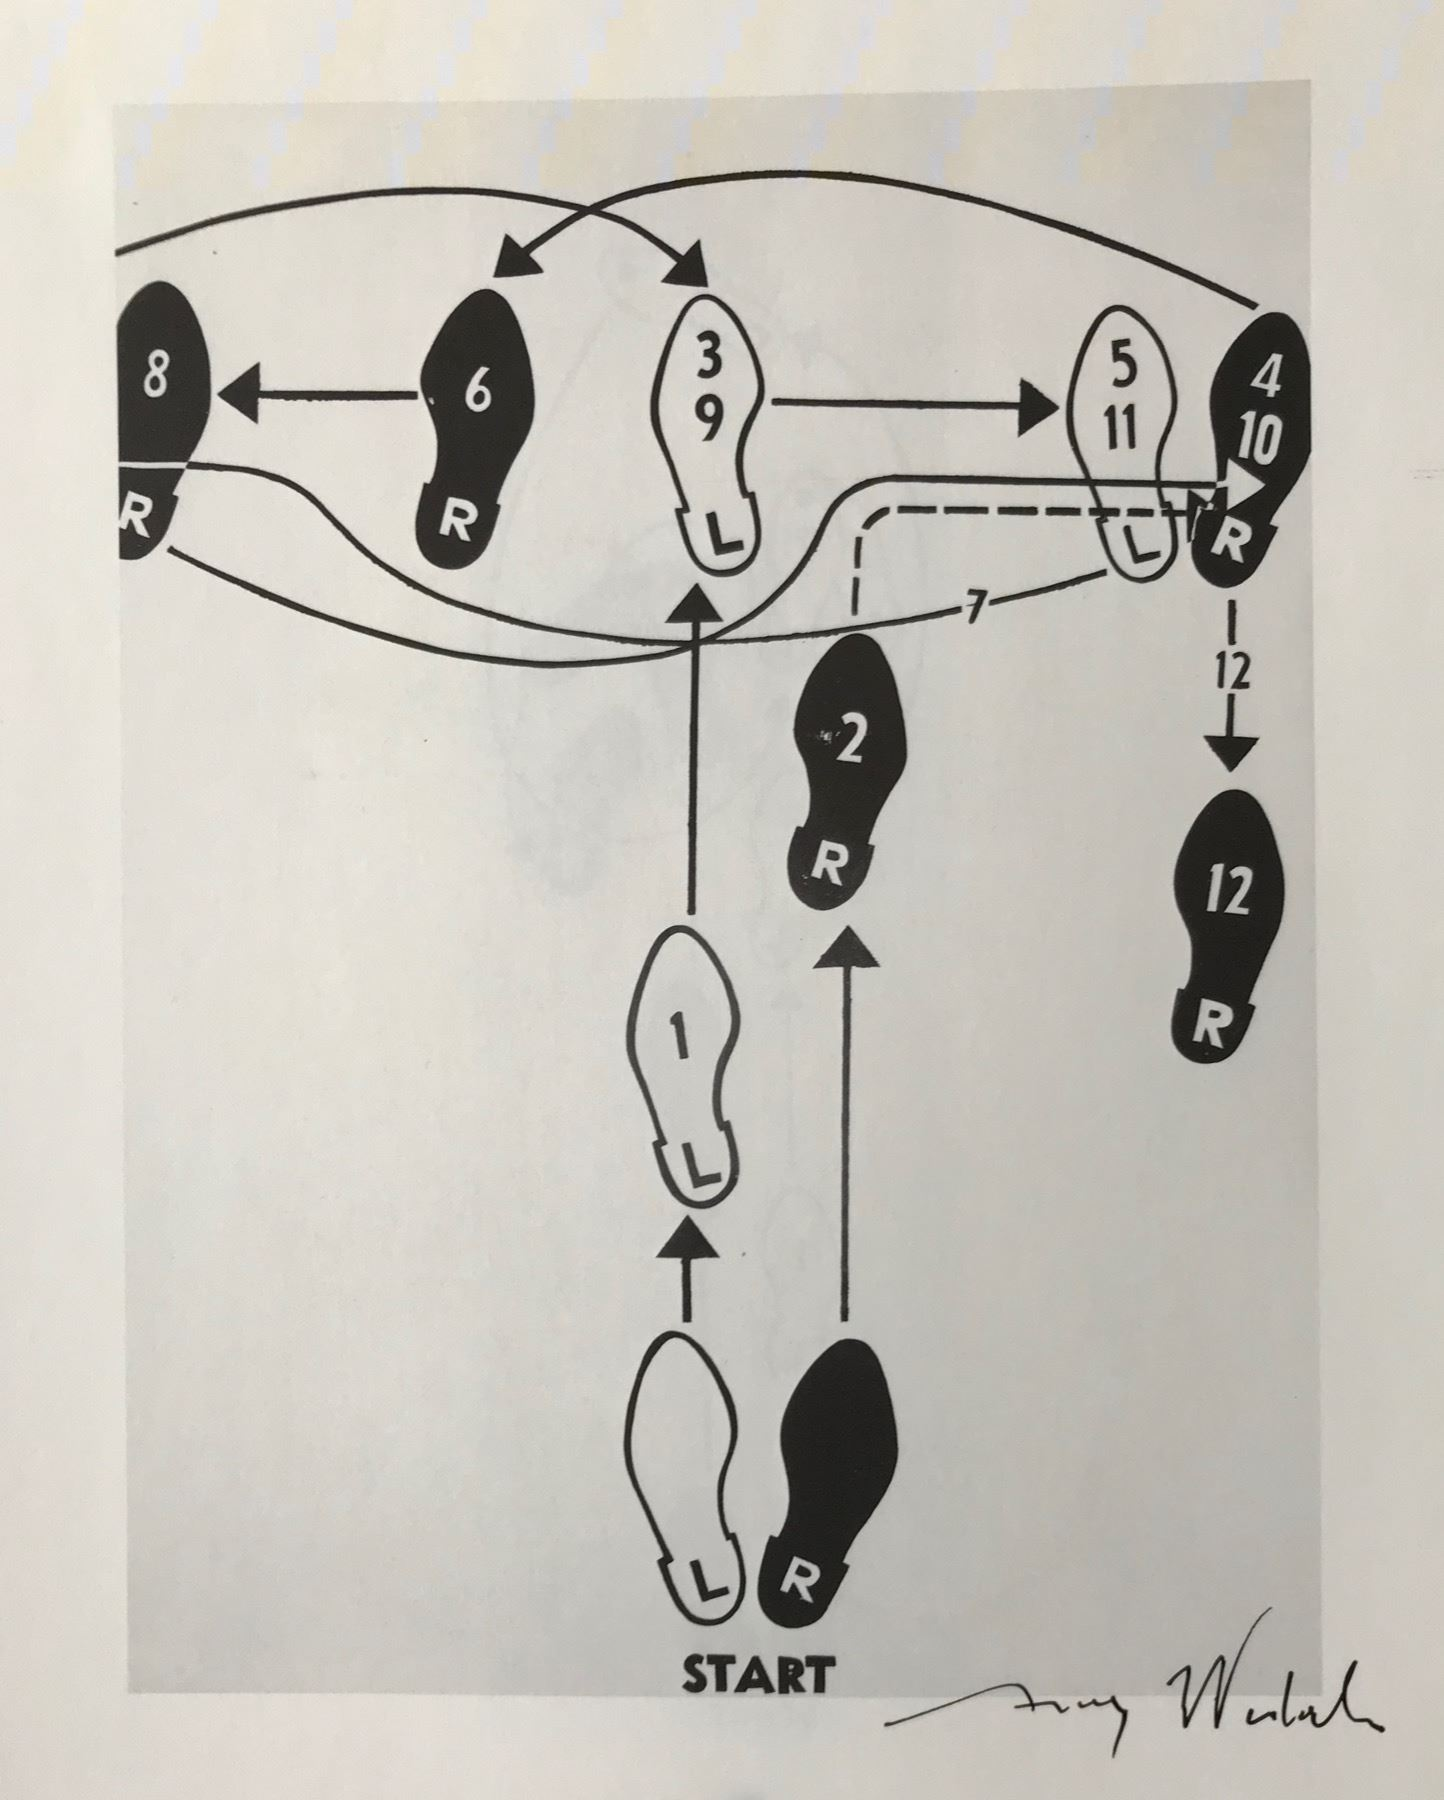 hight resolution of image 1 andy warhol dance diagram signed print 1986